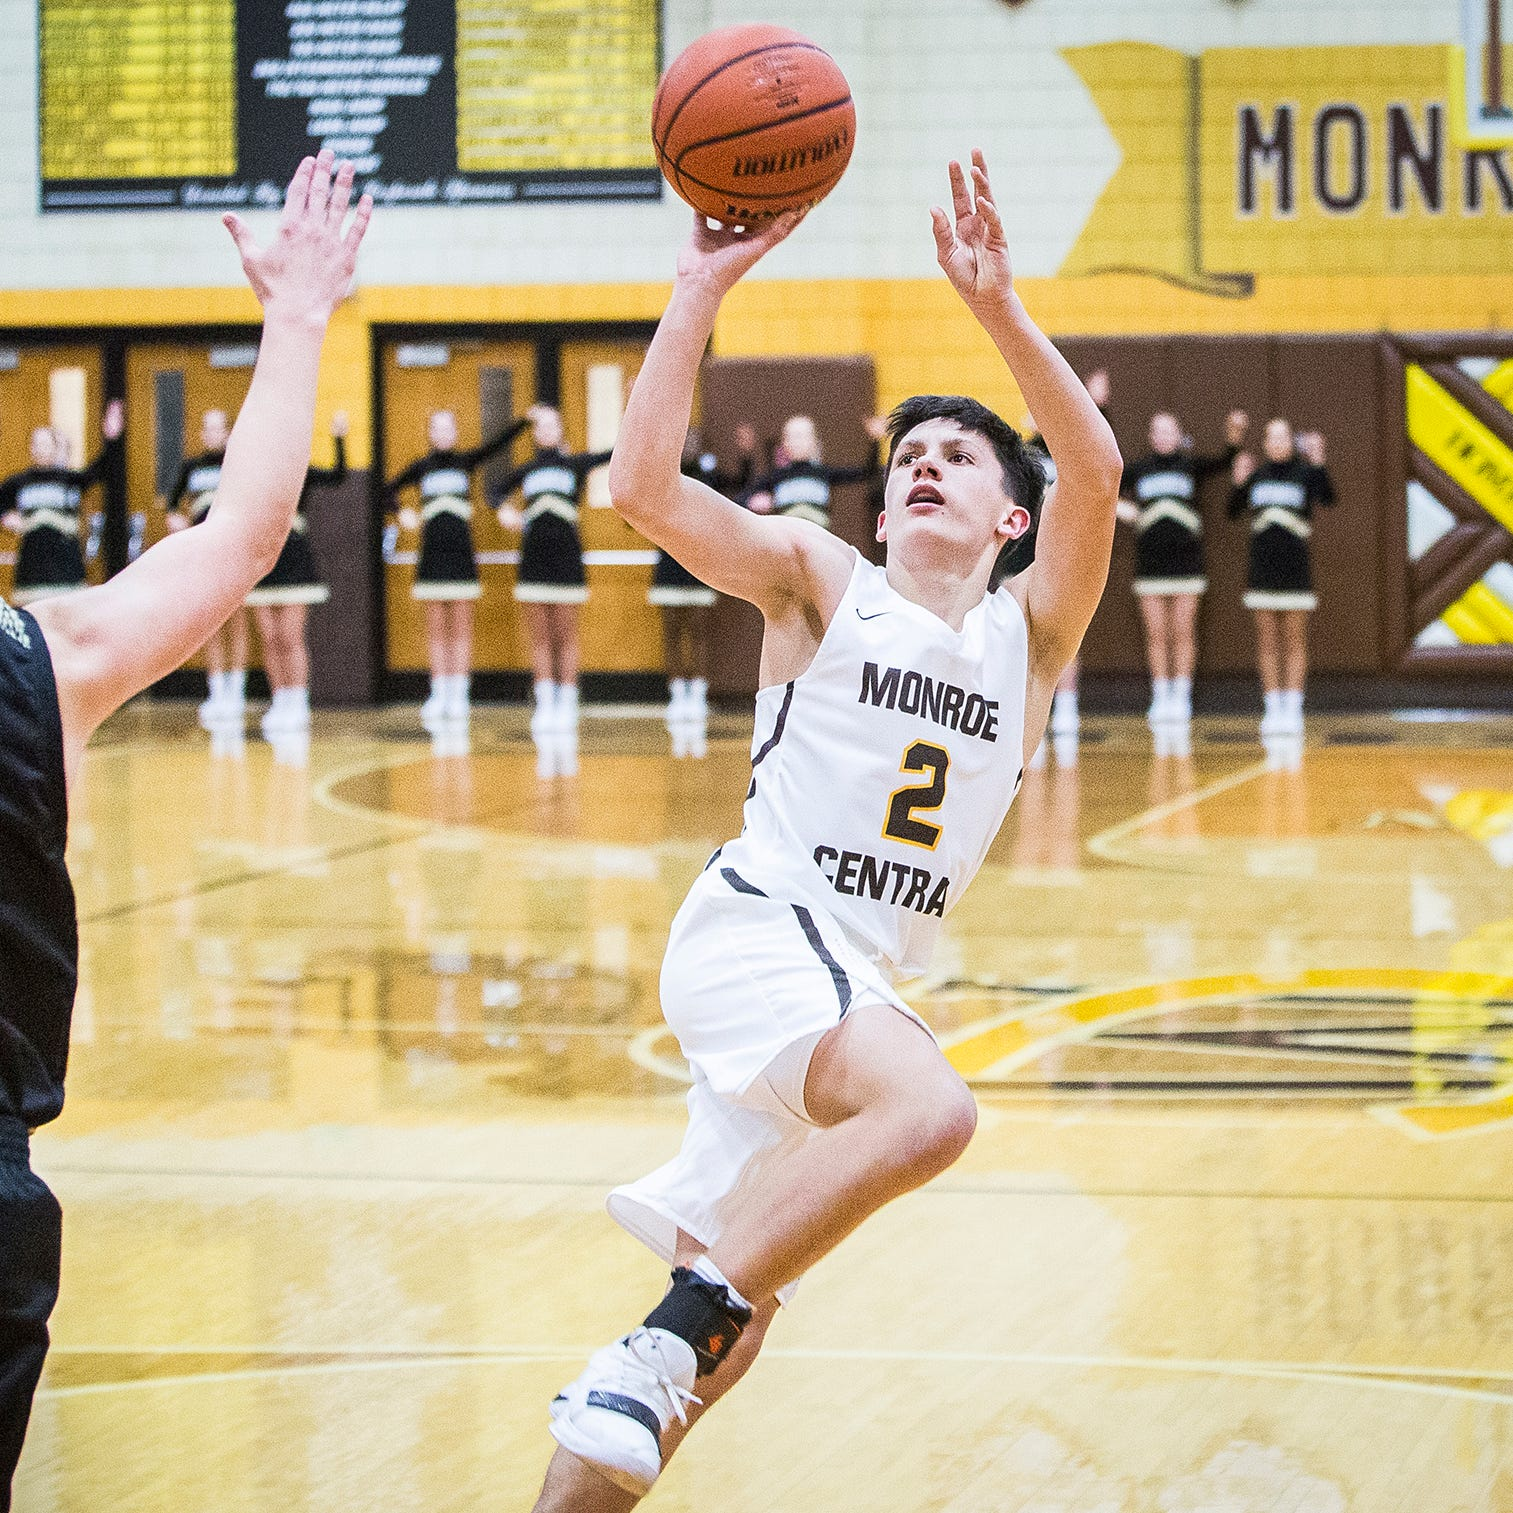 HS hoops rundown: Monroe Central freshman continues hot streak